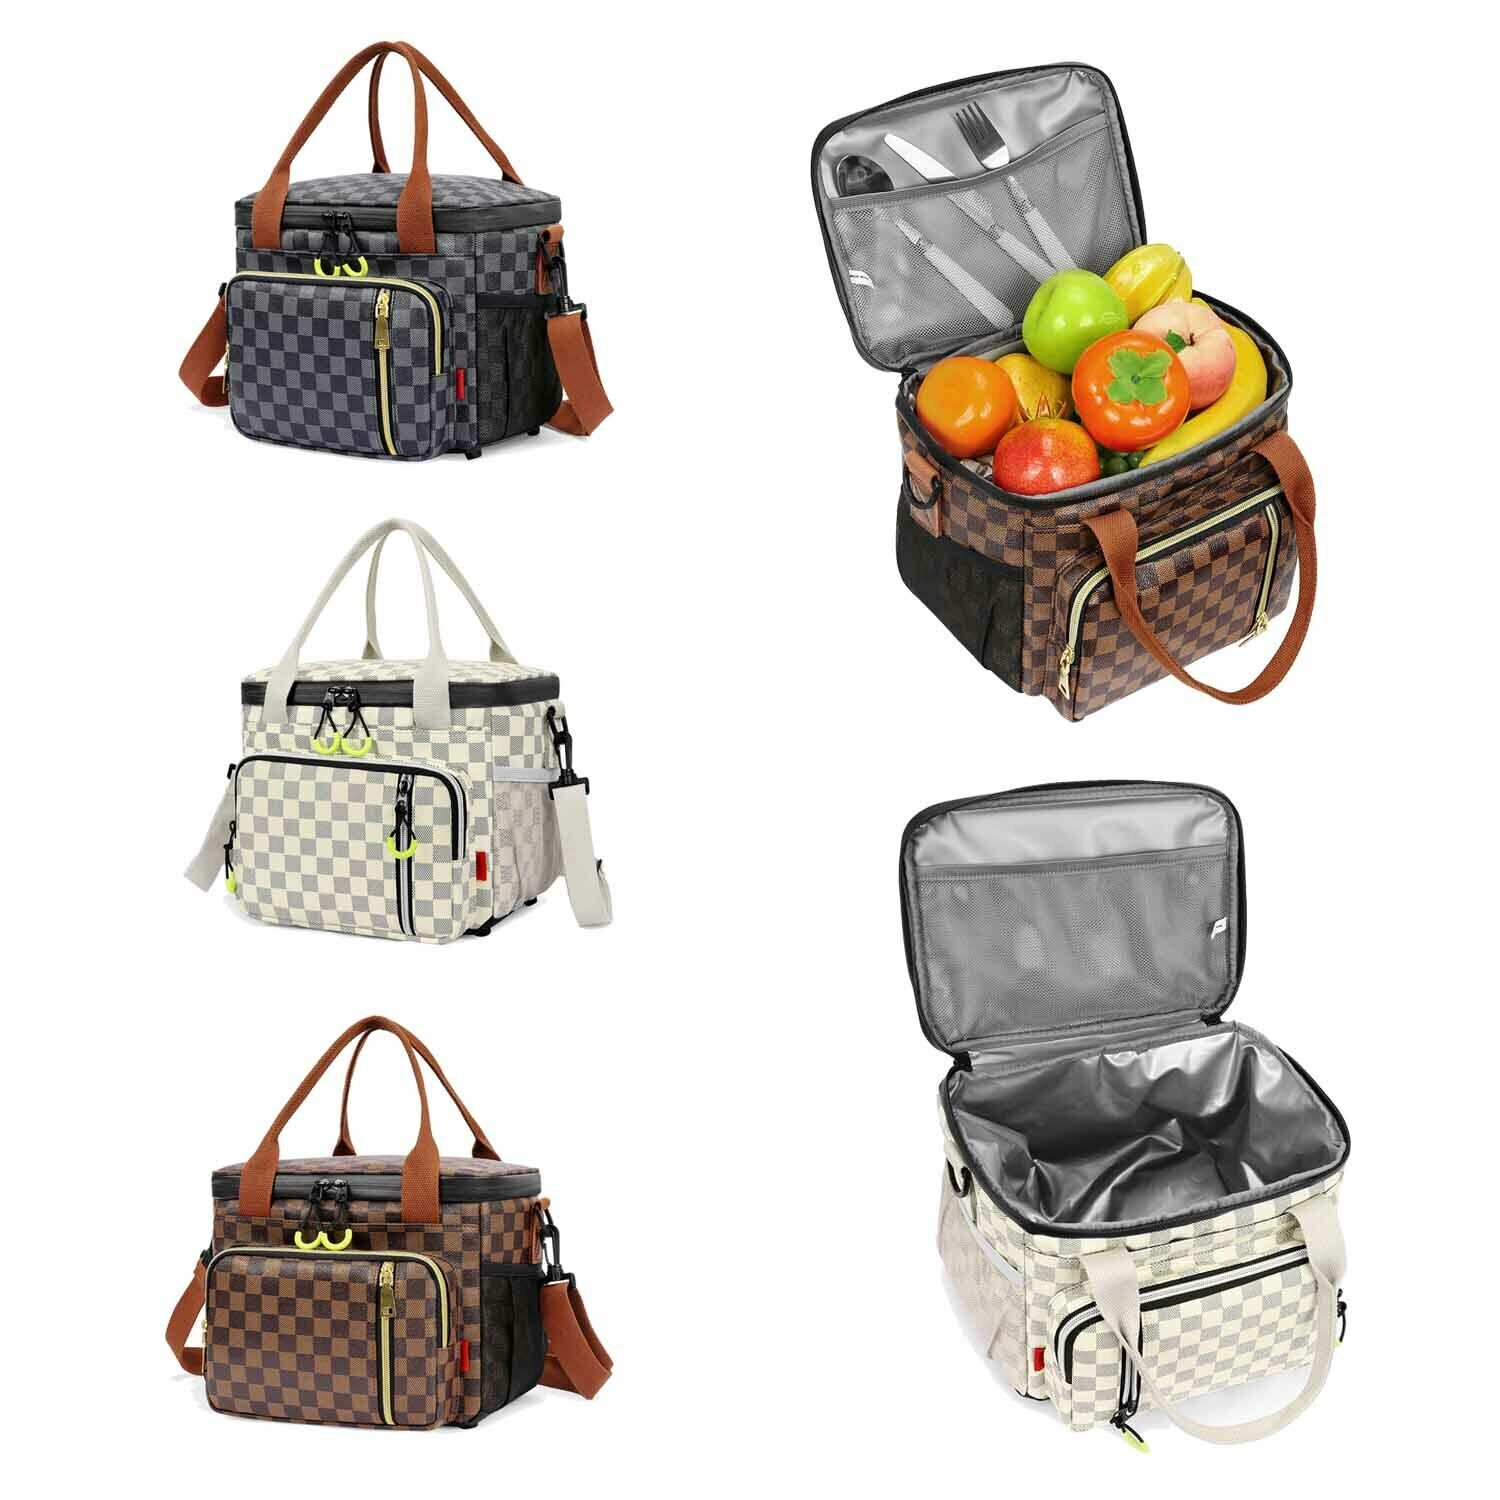 WODKEIS Portable Insulated Thermal Cooler Lunch Bag Food Tote Box for Women/&Men